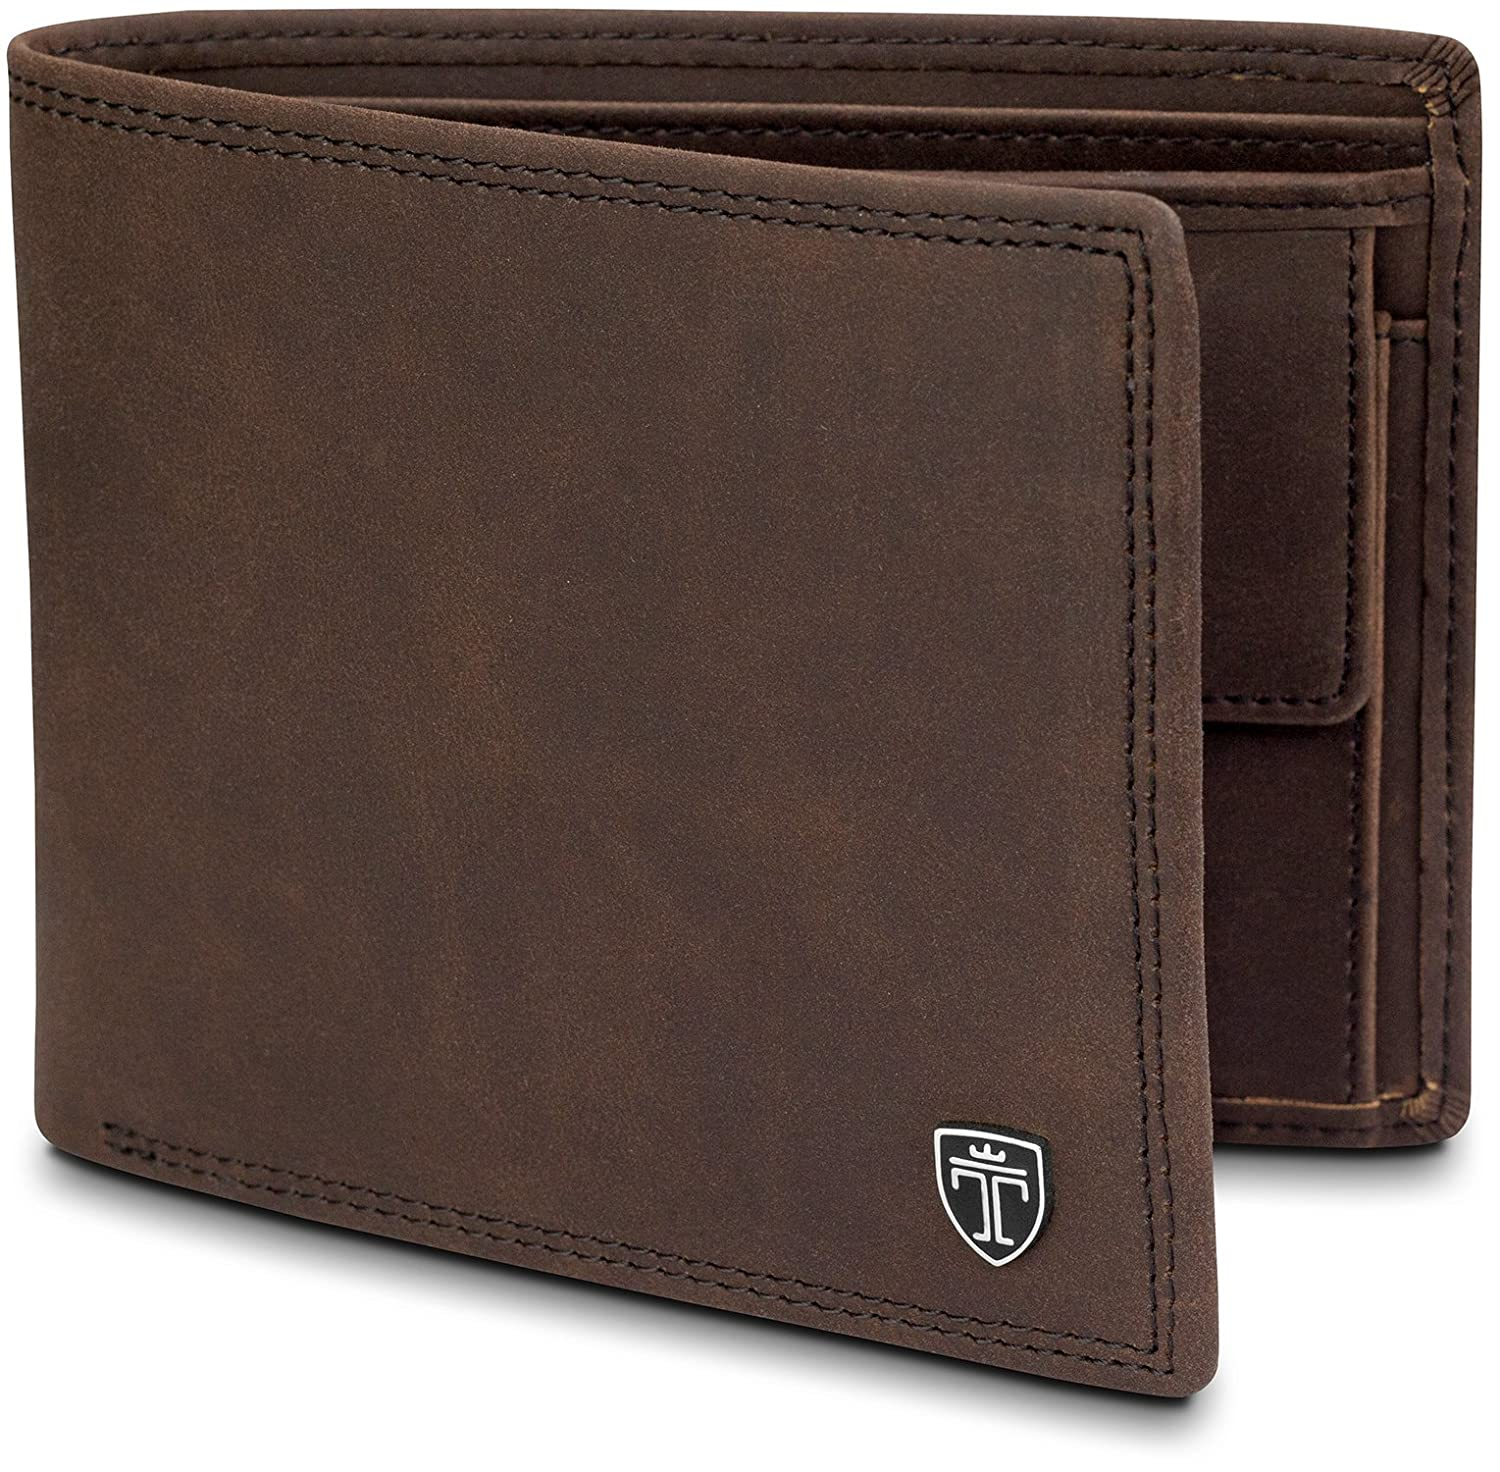 "TRAVANDO ® Wallet Mens Black ""Oslo"" - RFID Blocking - Durable Bifold Wallet - Card Holder - Coin Pocket - Gift Box"